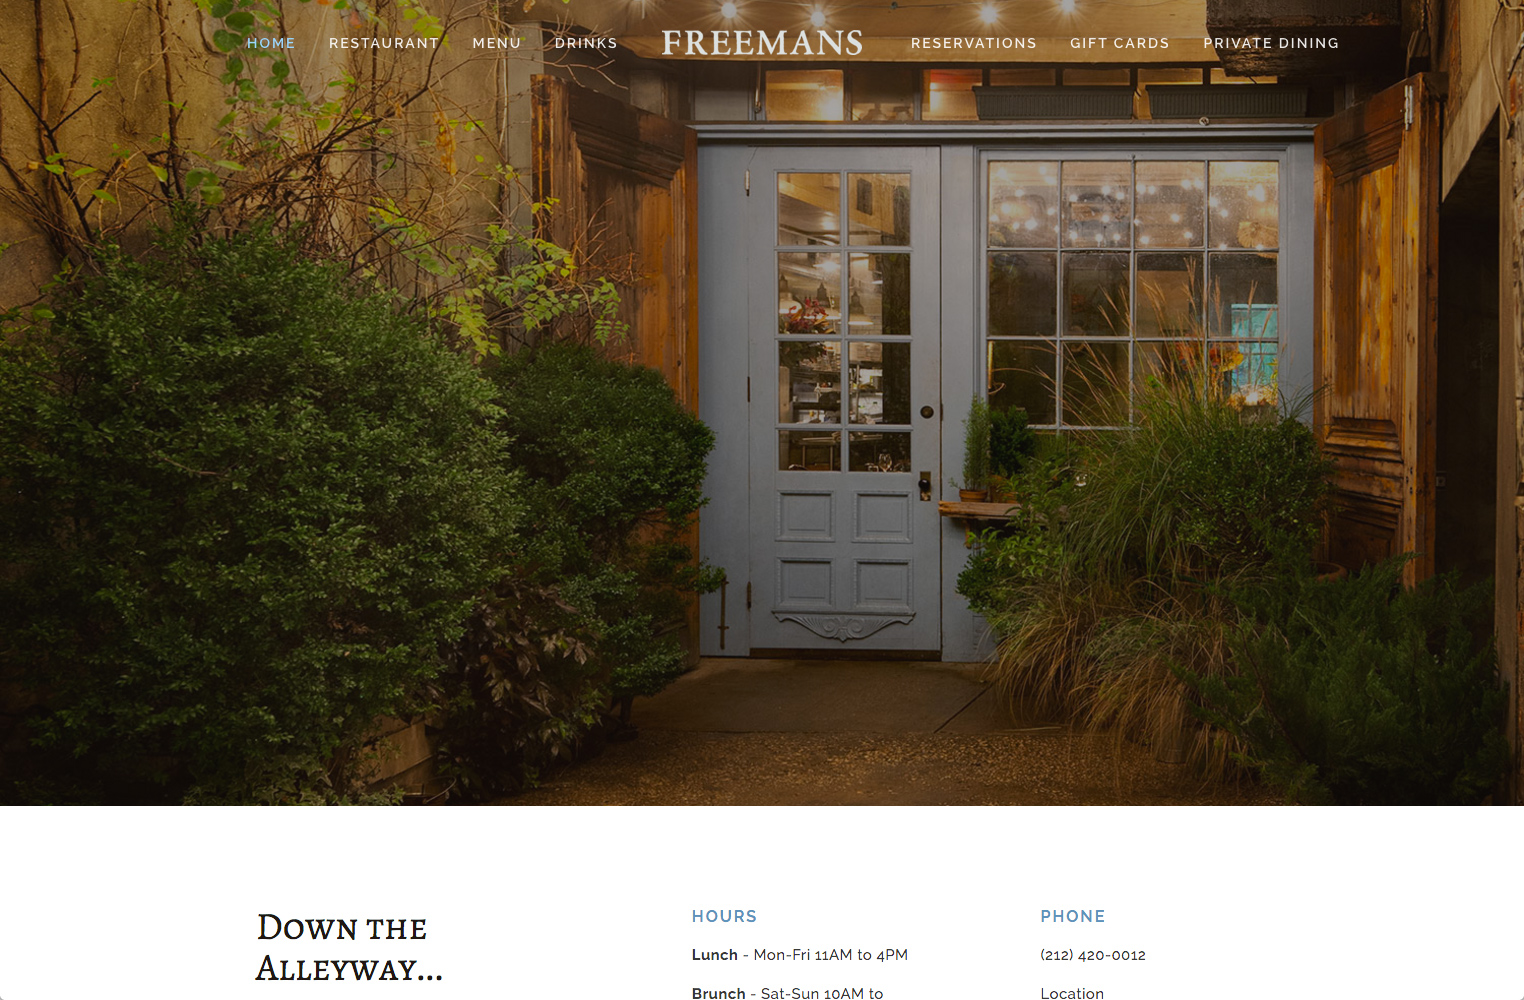 screenshot showing a live demo of >Freeman's Restaurant site created using Squarespace